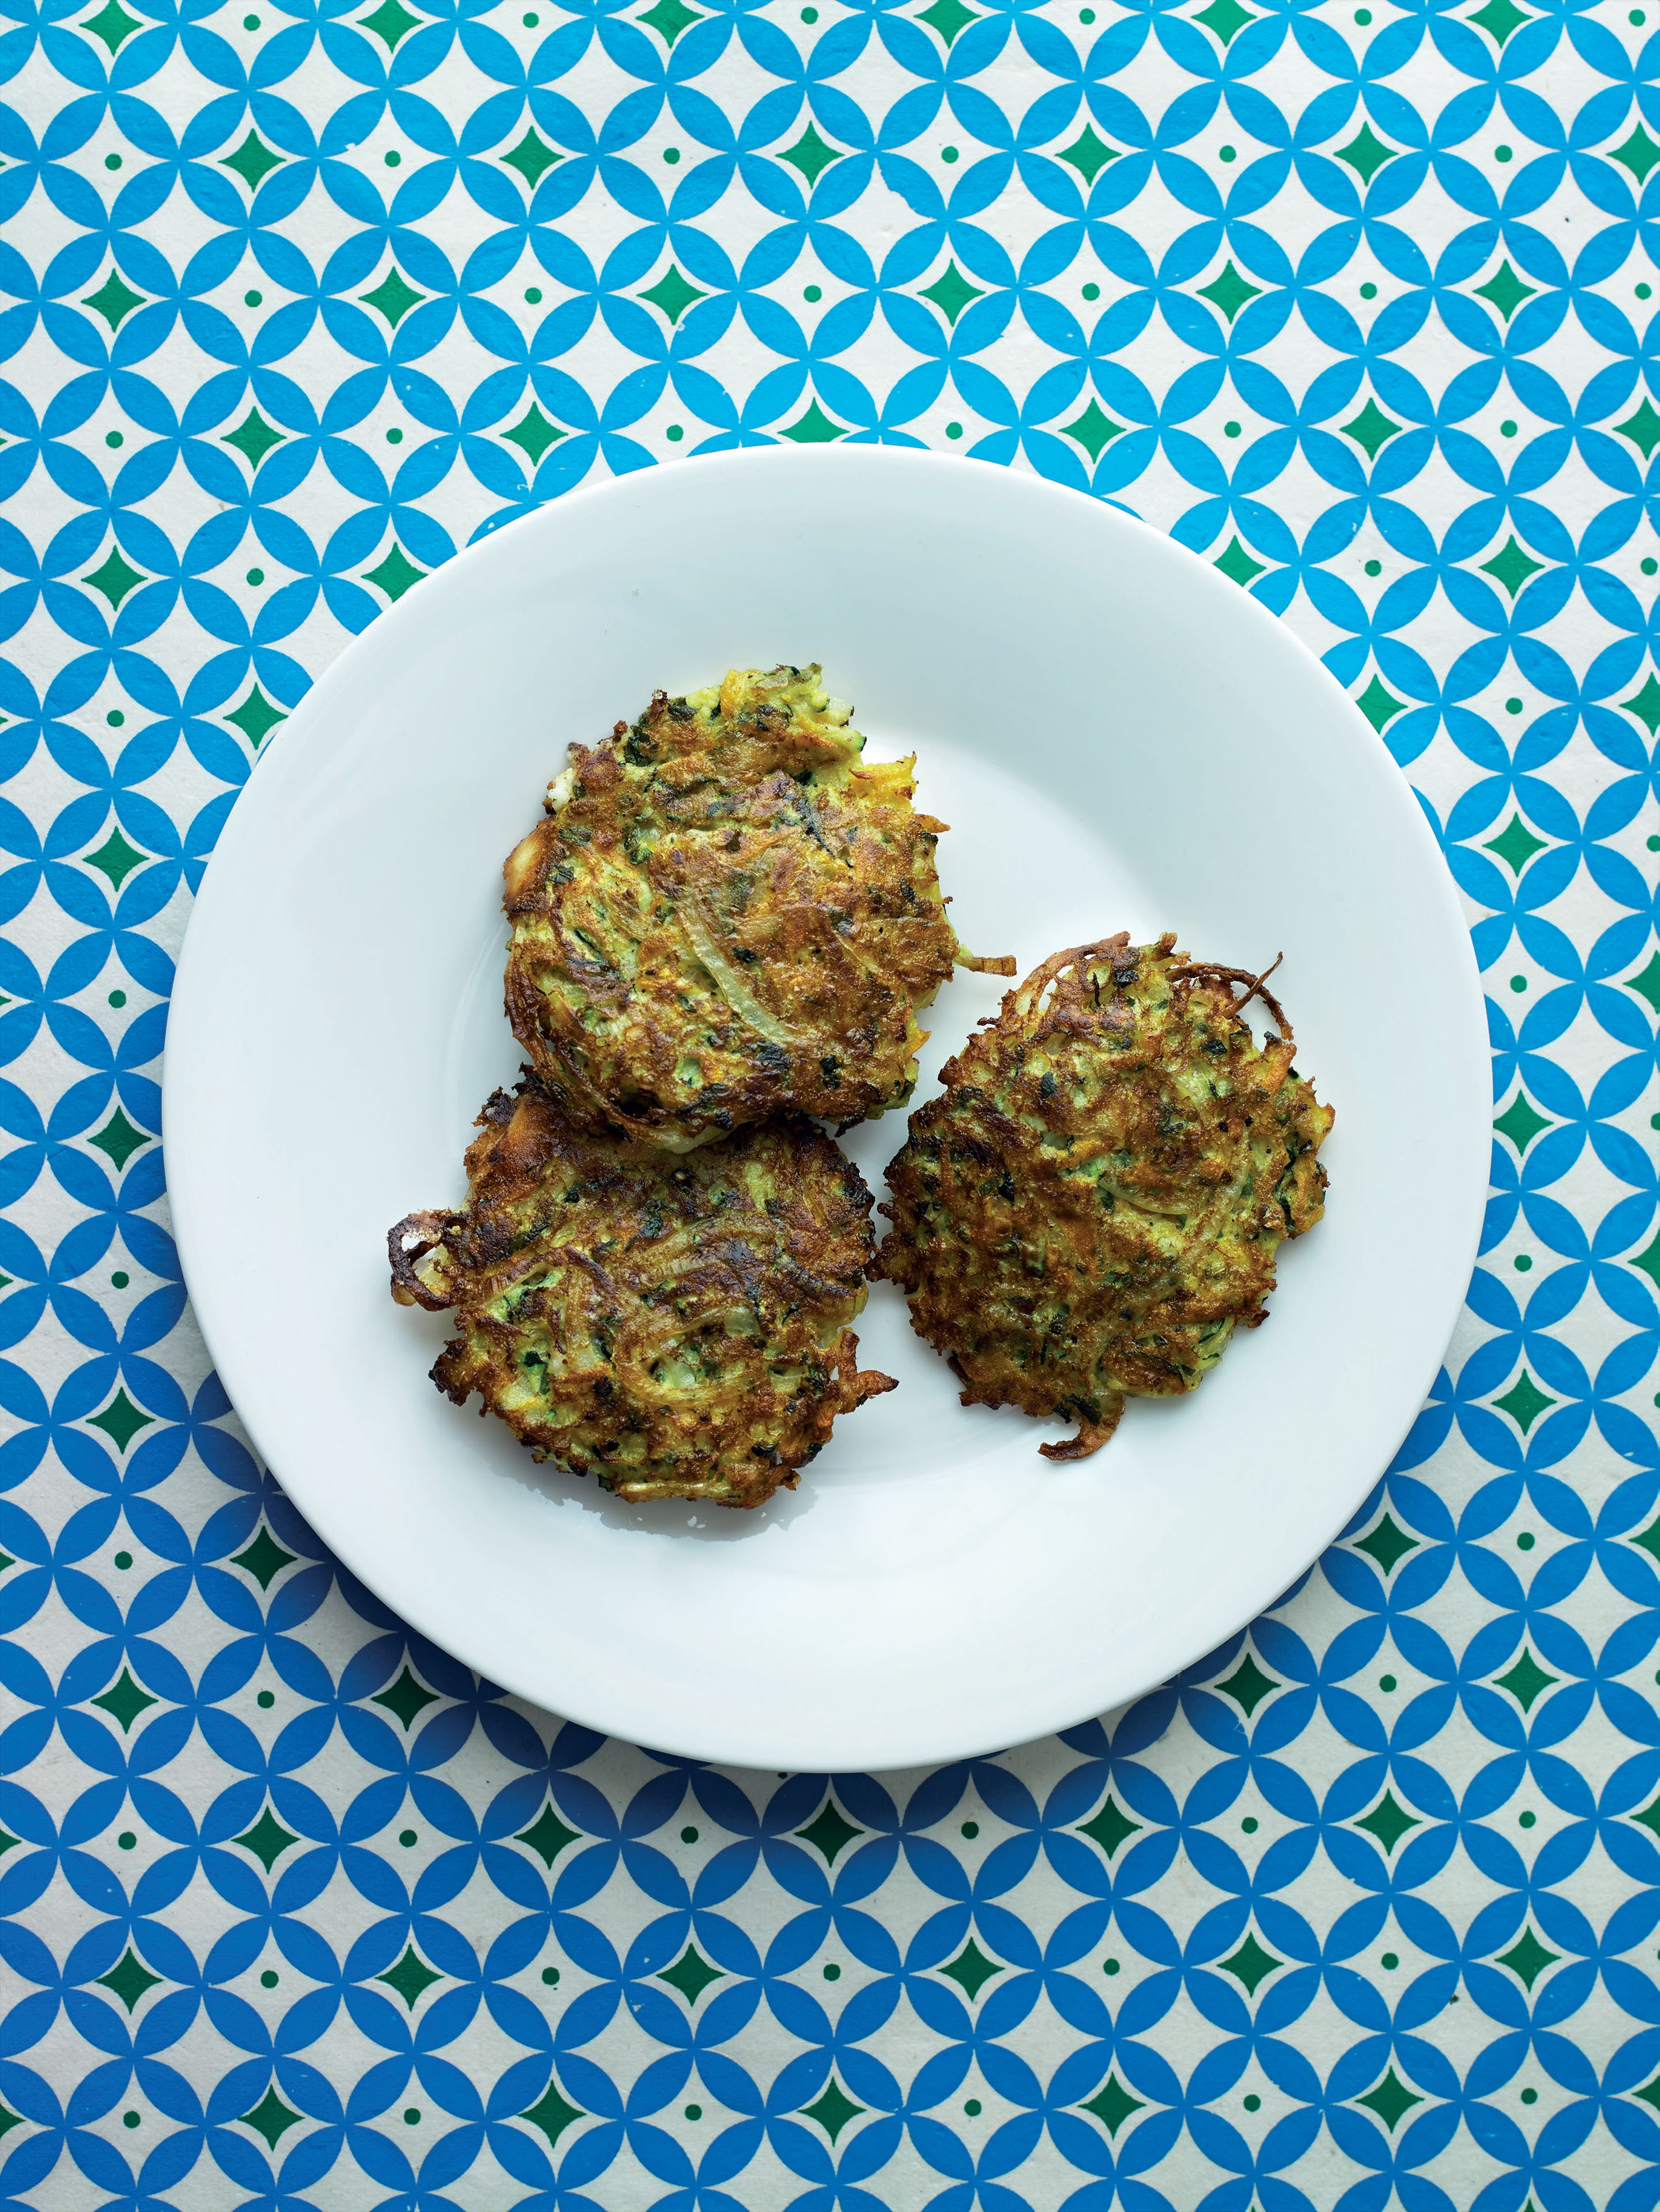 Courgette, carrot and feta fritters